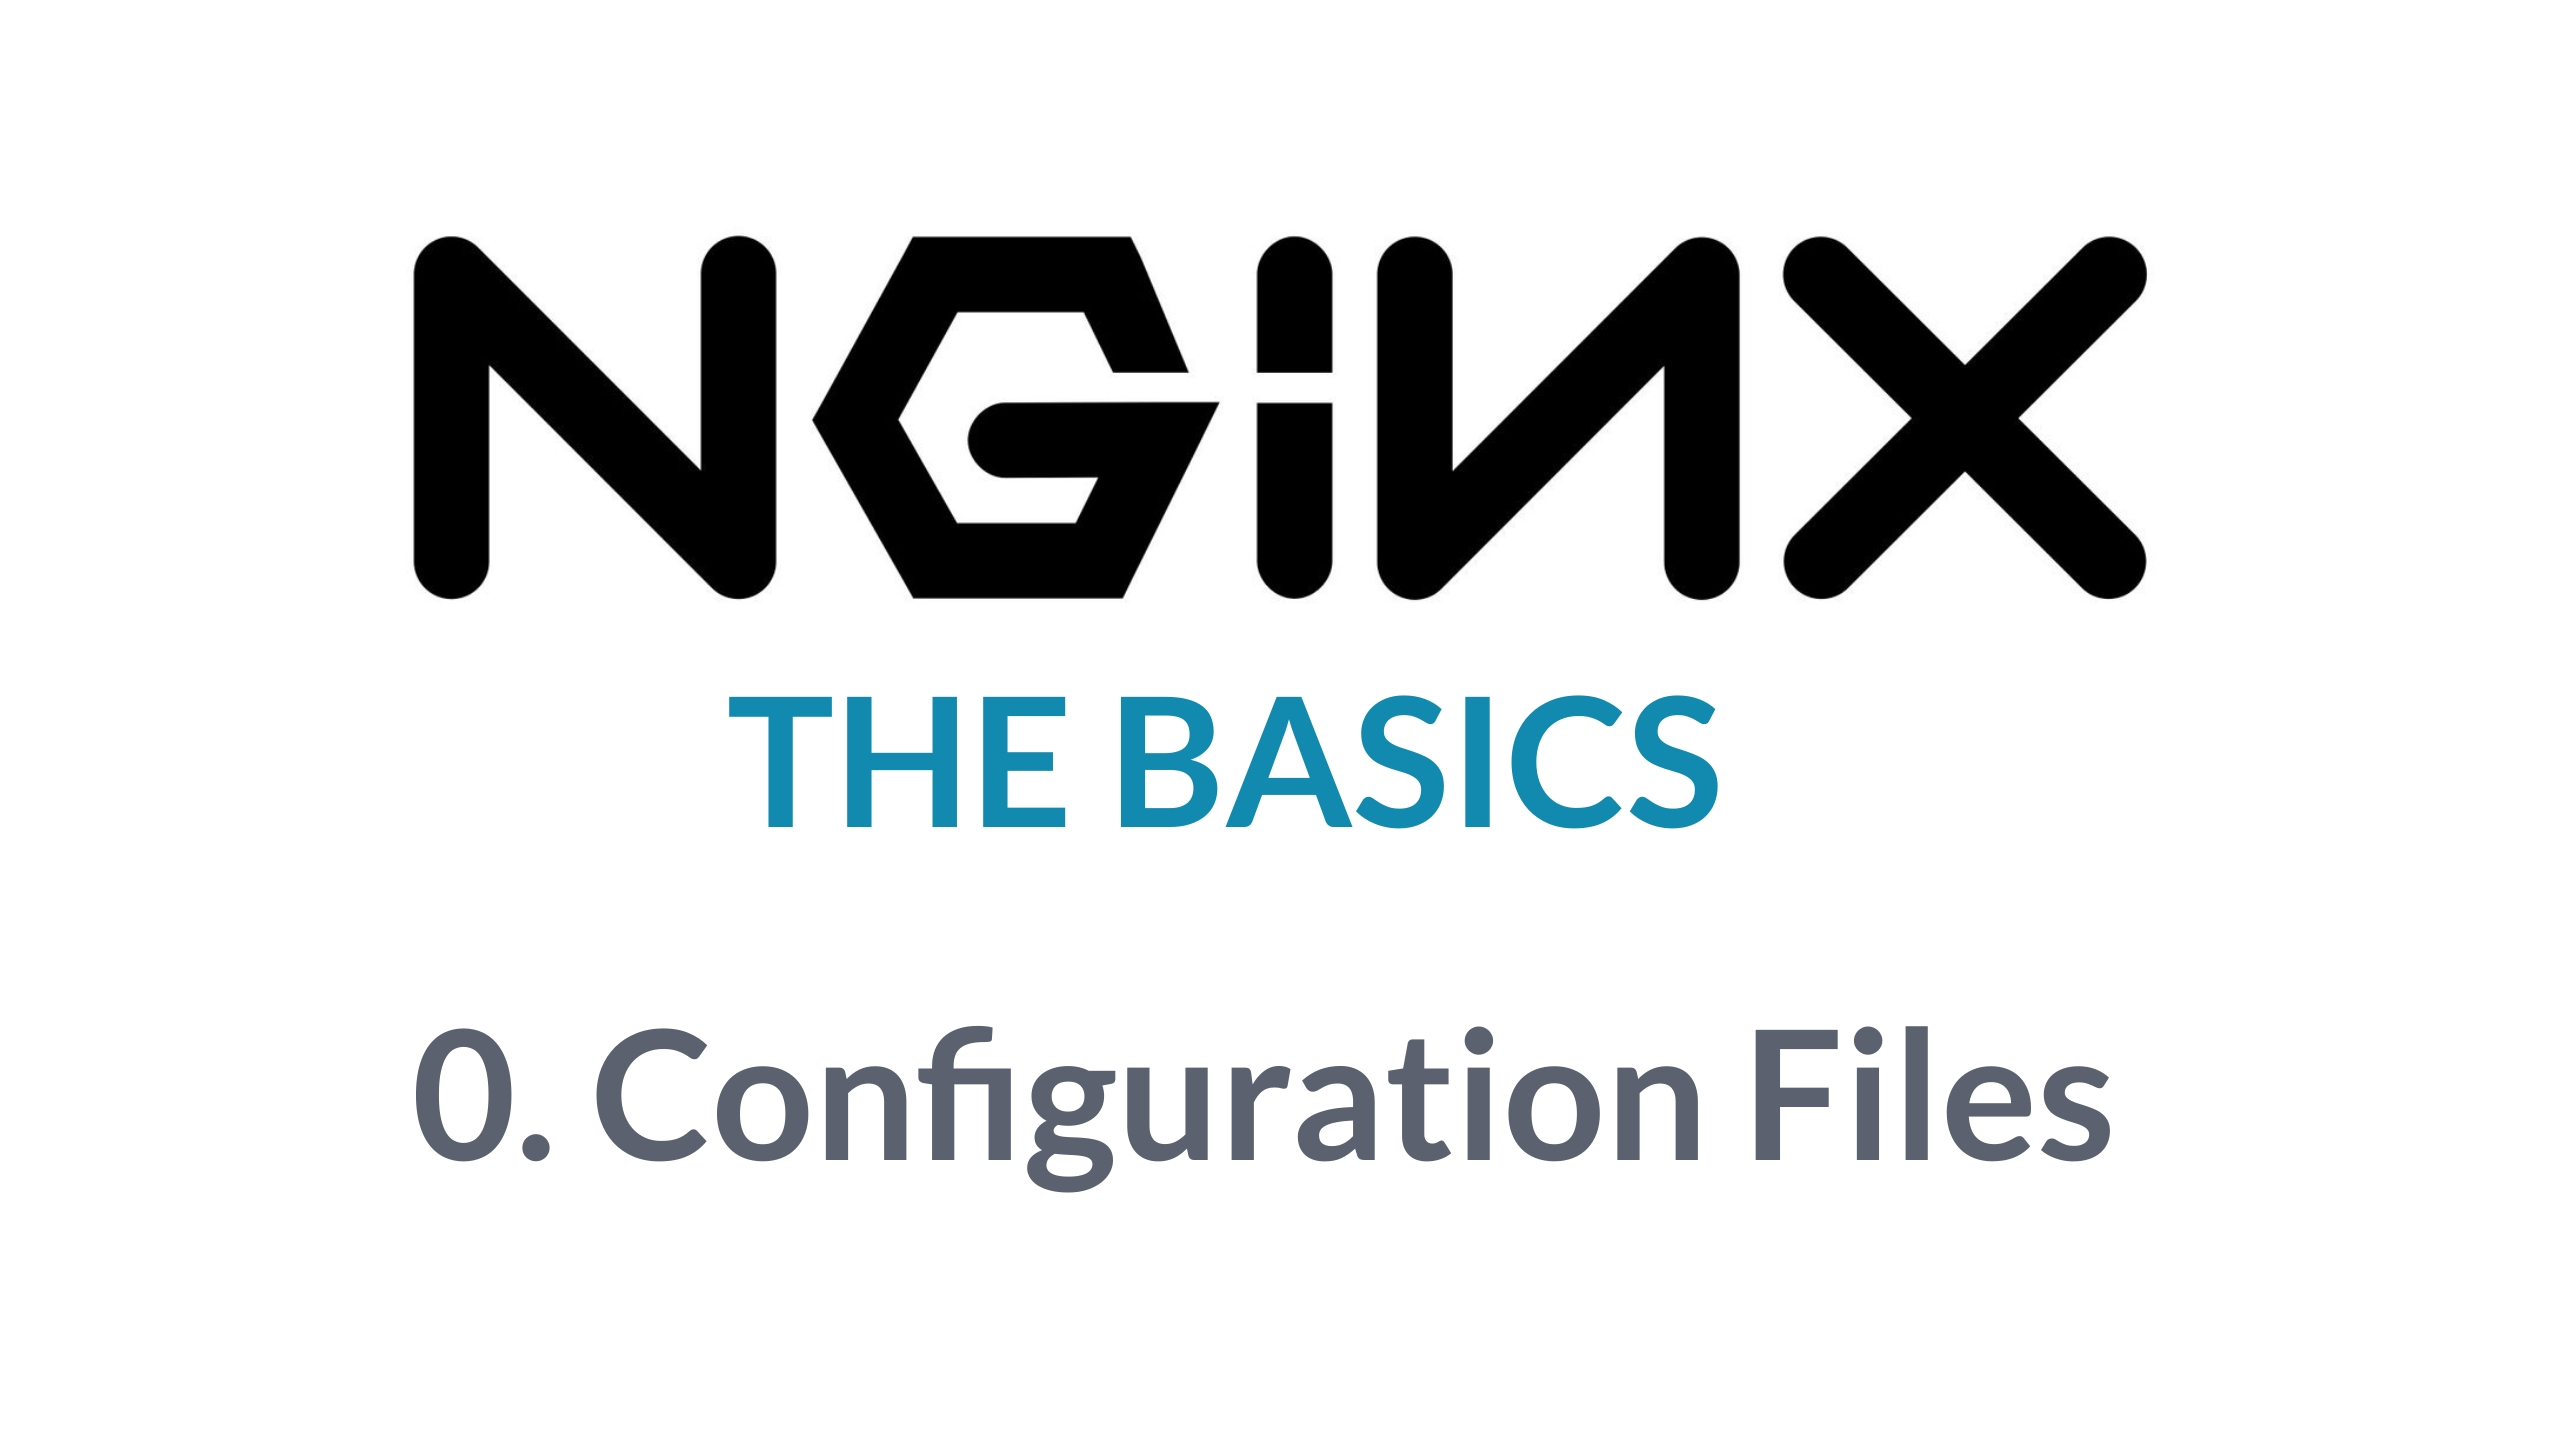 Nginx Basics Part 0 - Configuration Files